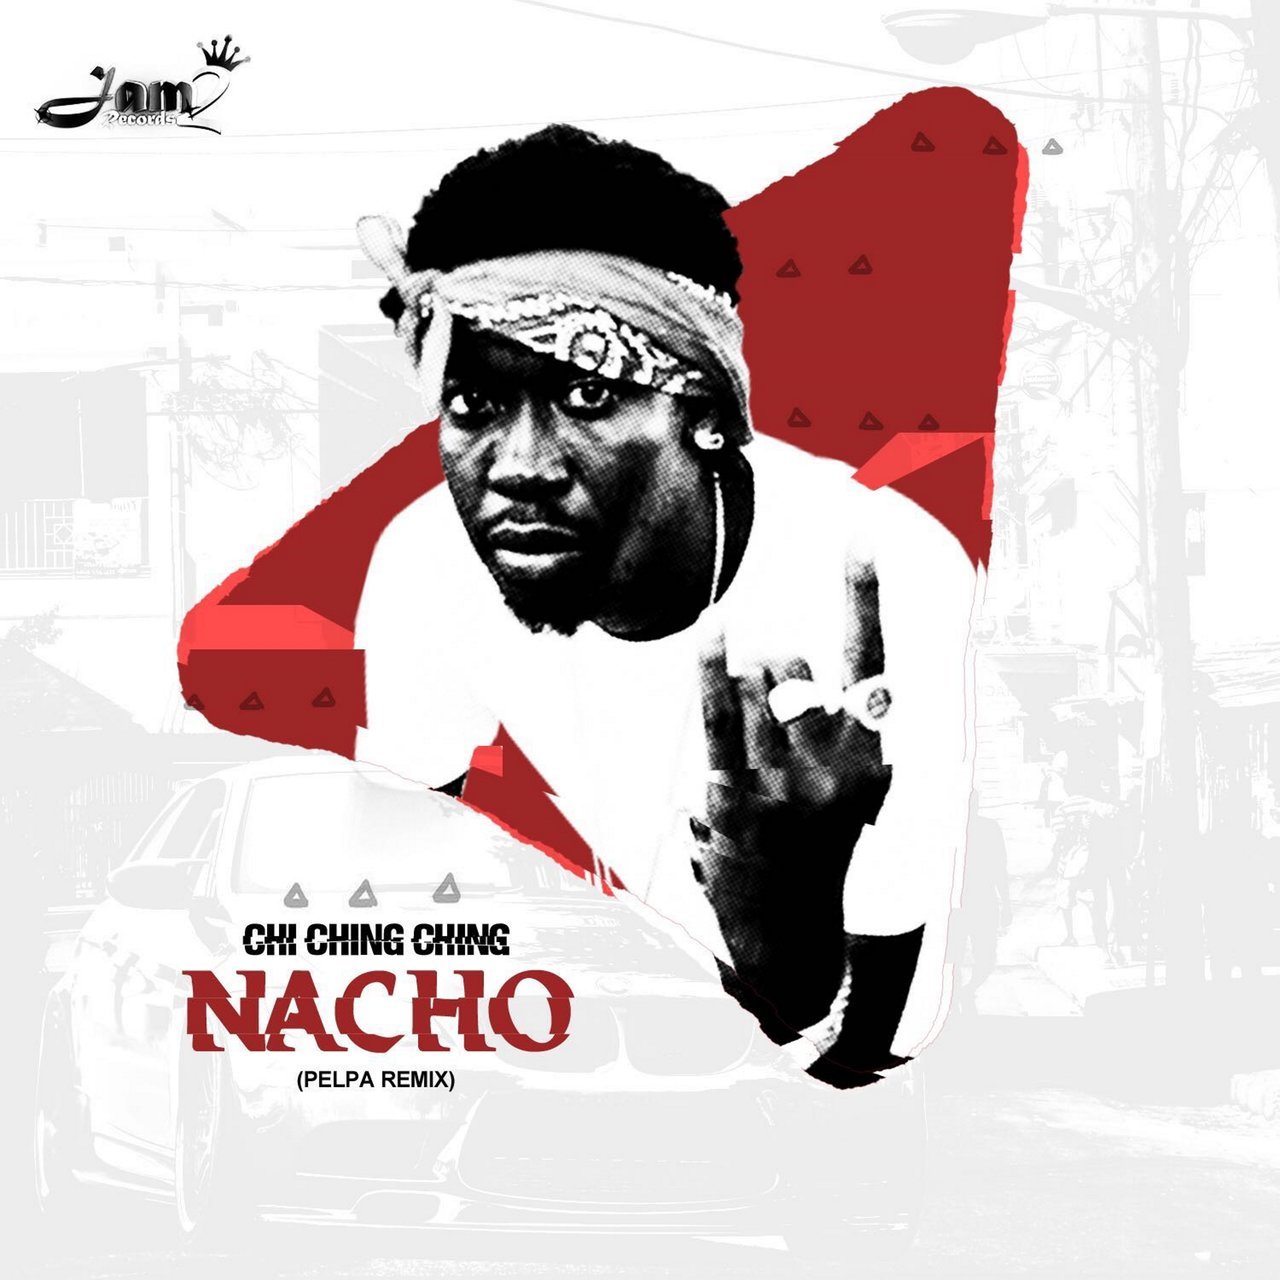 Nacho (Pelpa Remix) - Single